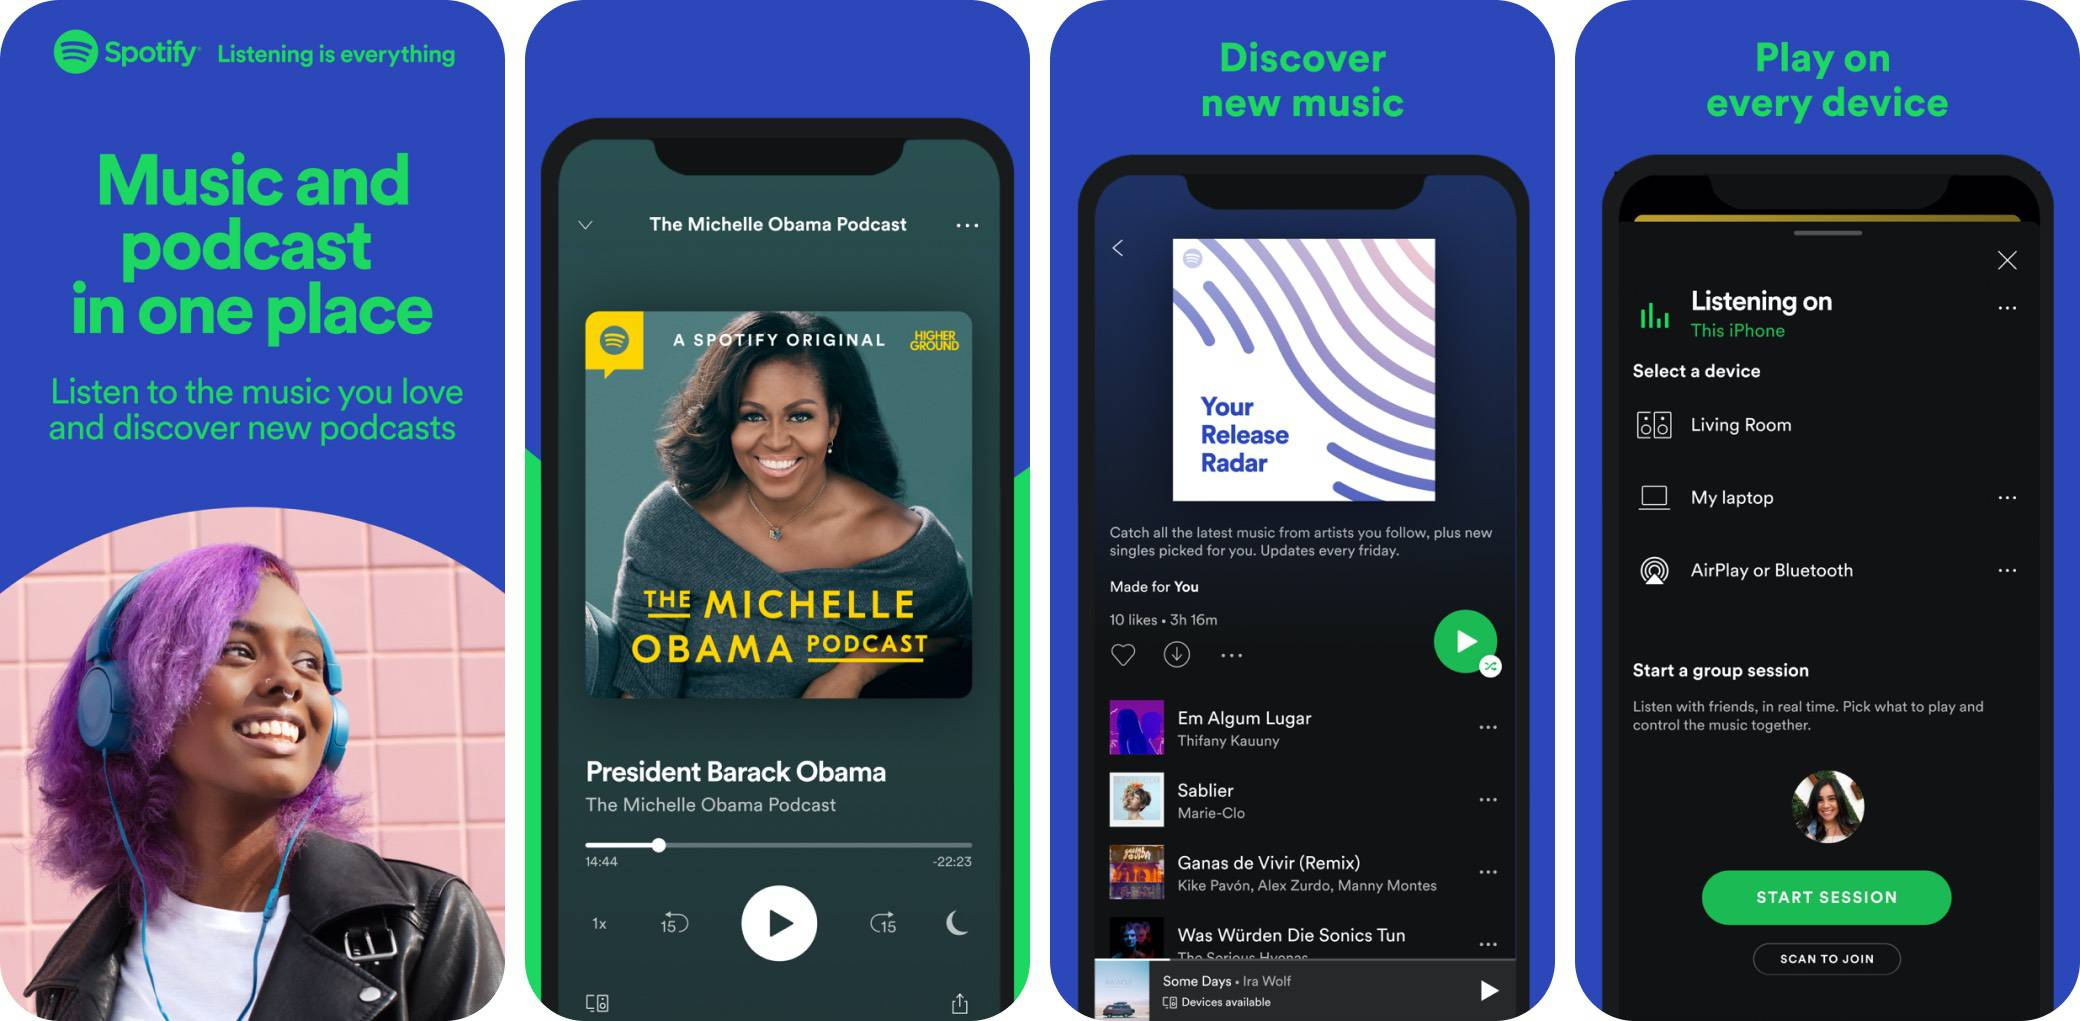 spotify-music screenshot